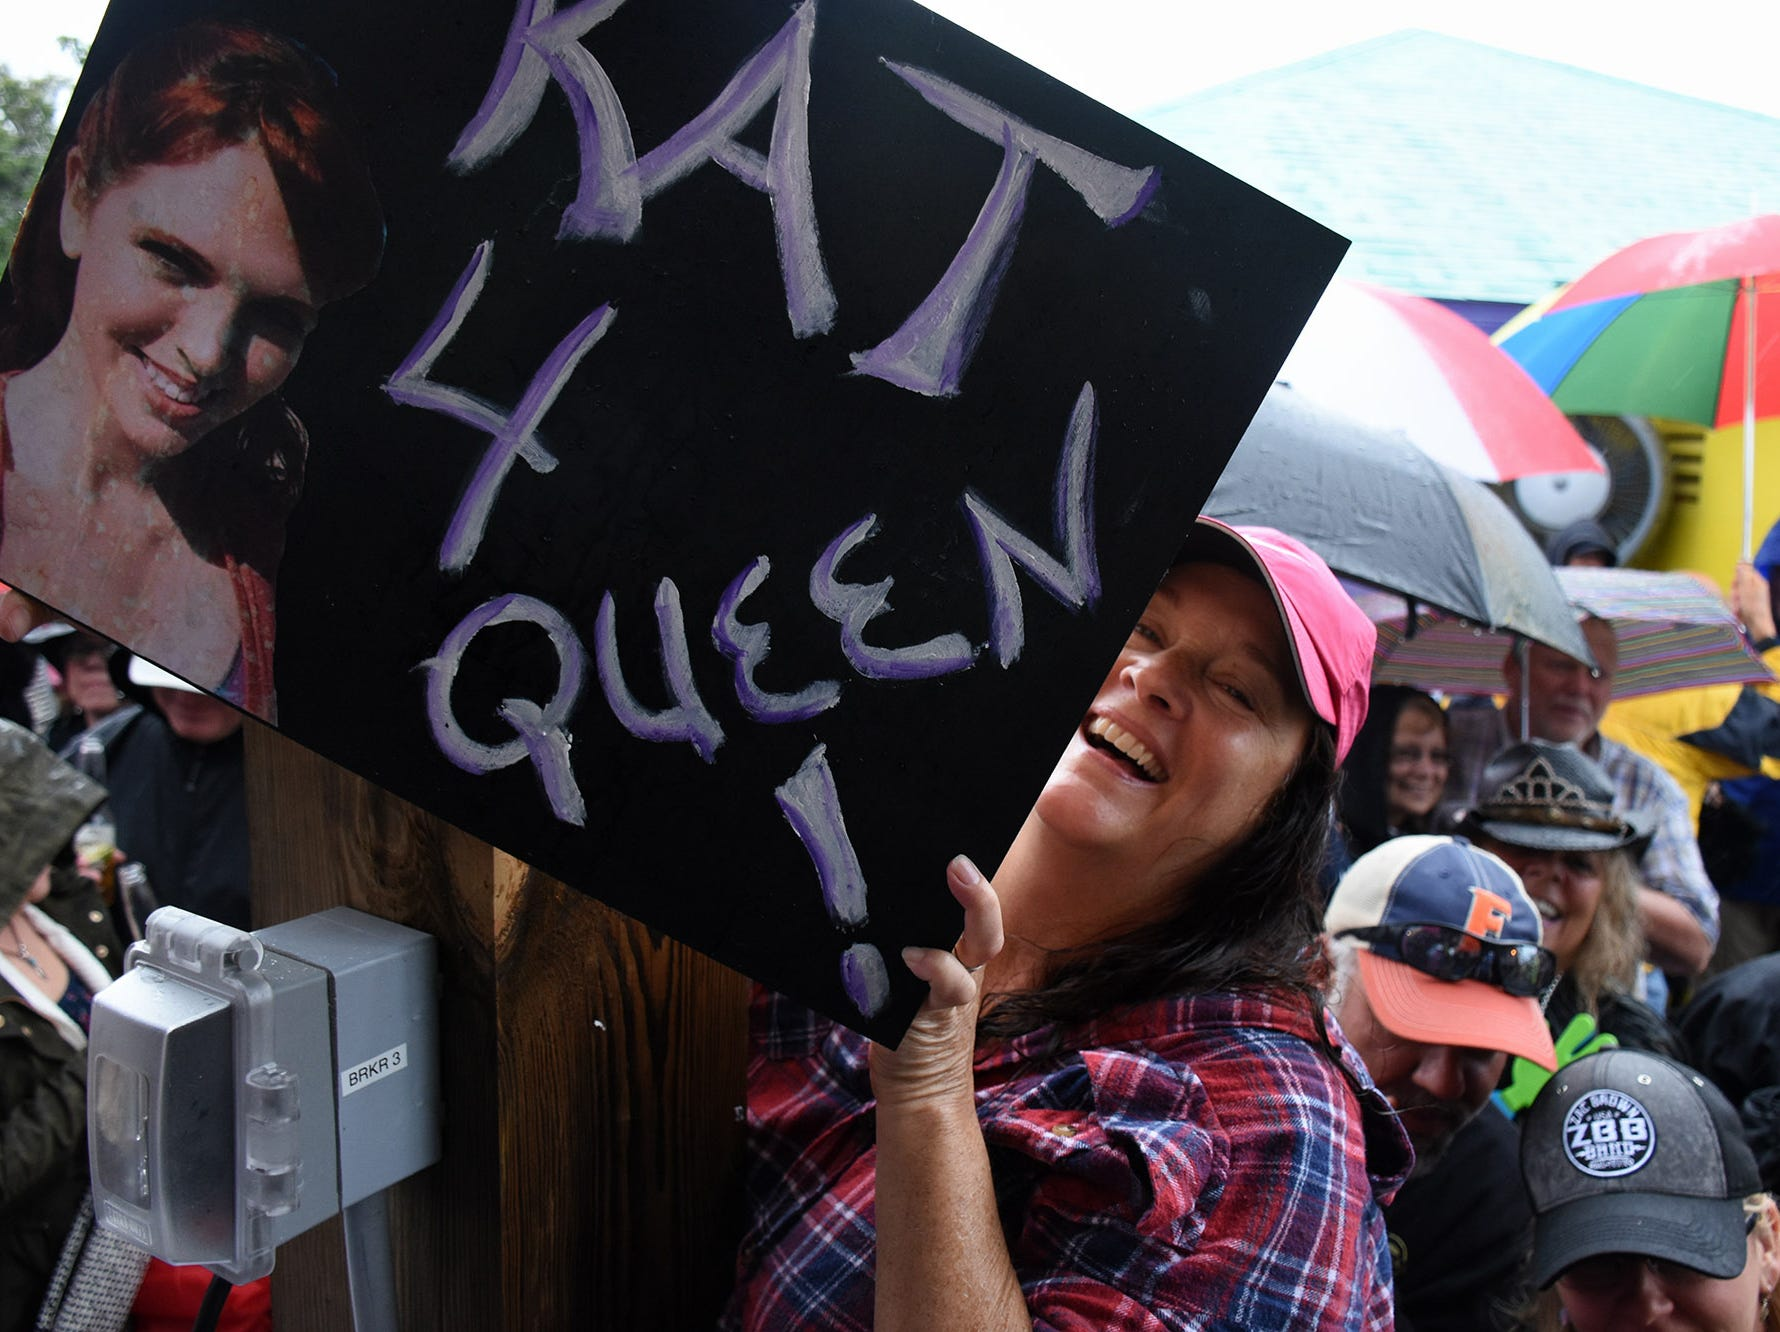 Kat Ebaugh of Marco Island had a serious campaign mounted for her bid. Stan's Idle Hour restaurant held The 35th annual Mullet Festival over the weekend, a rain and beer-soaked celebration.